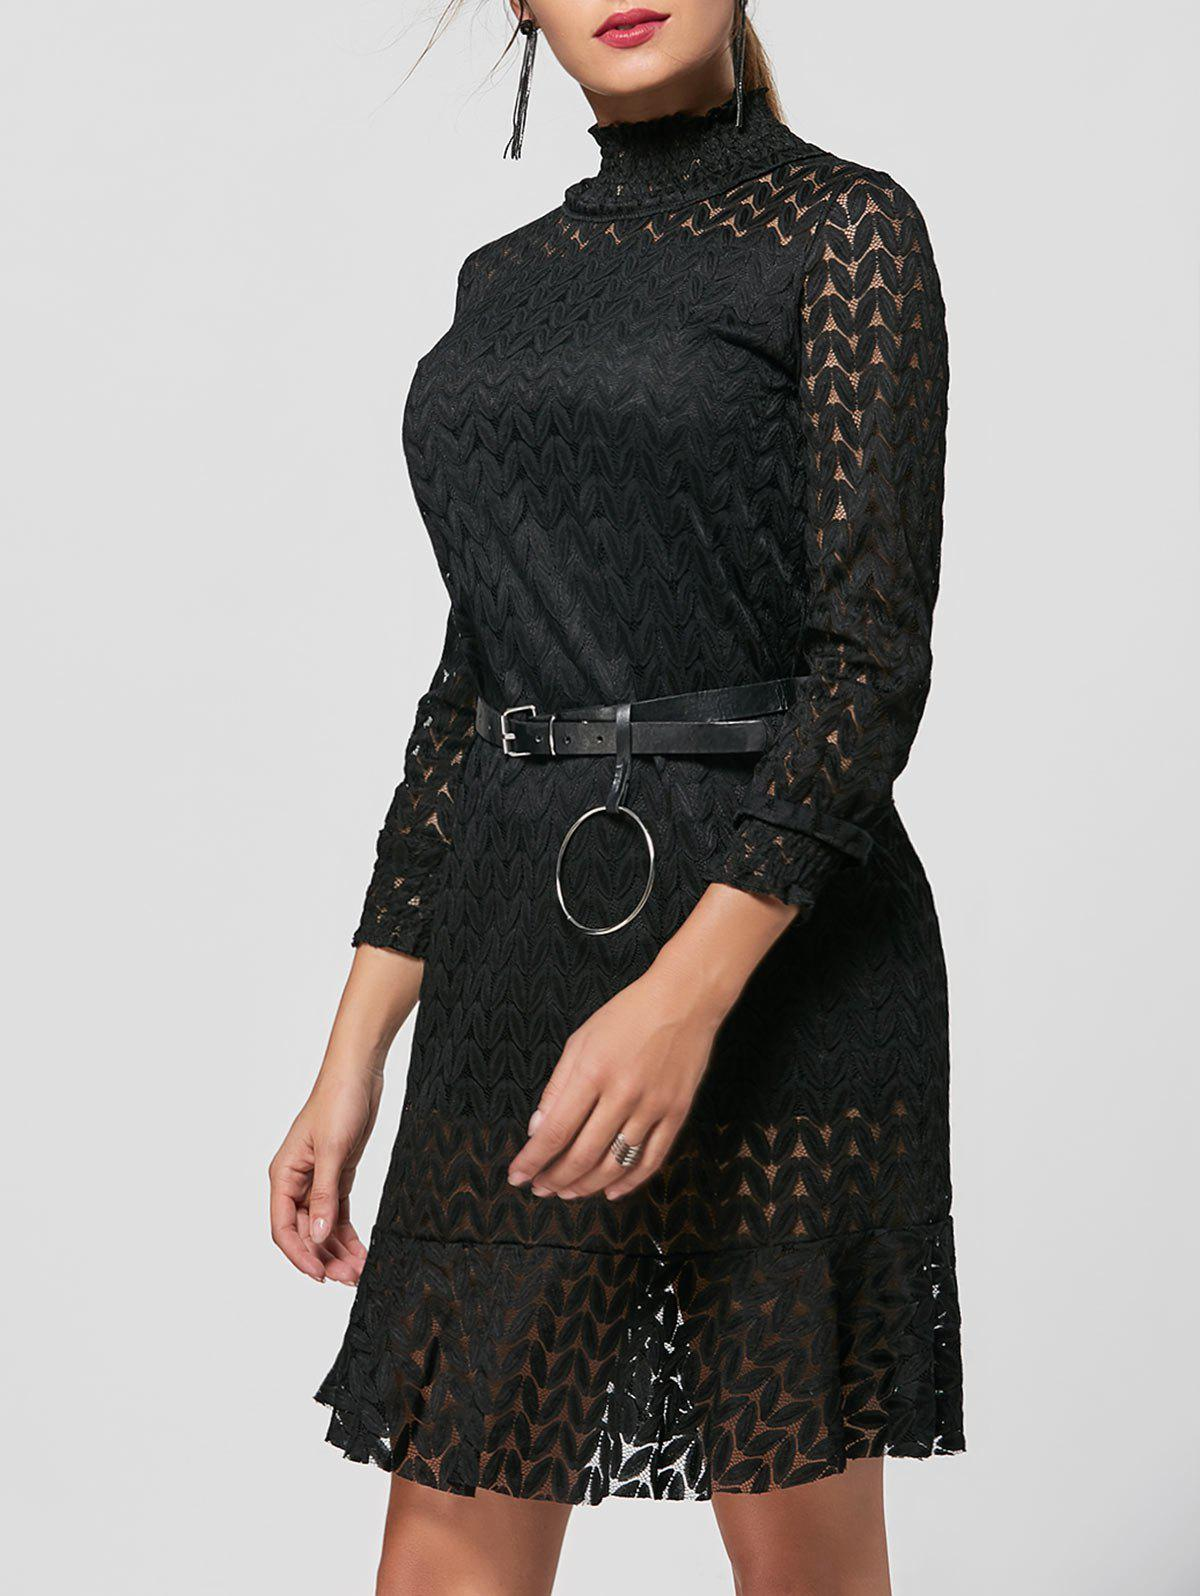 Stand Collar Flounce Shift Lace Dress - Noir L